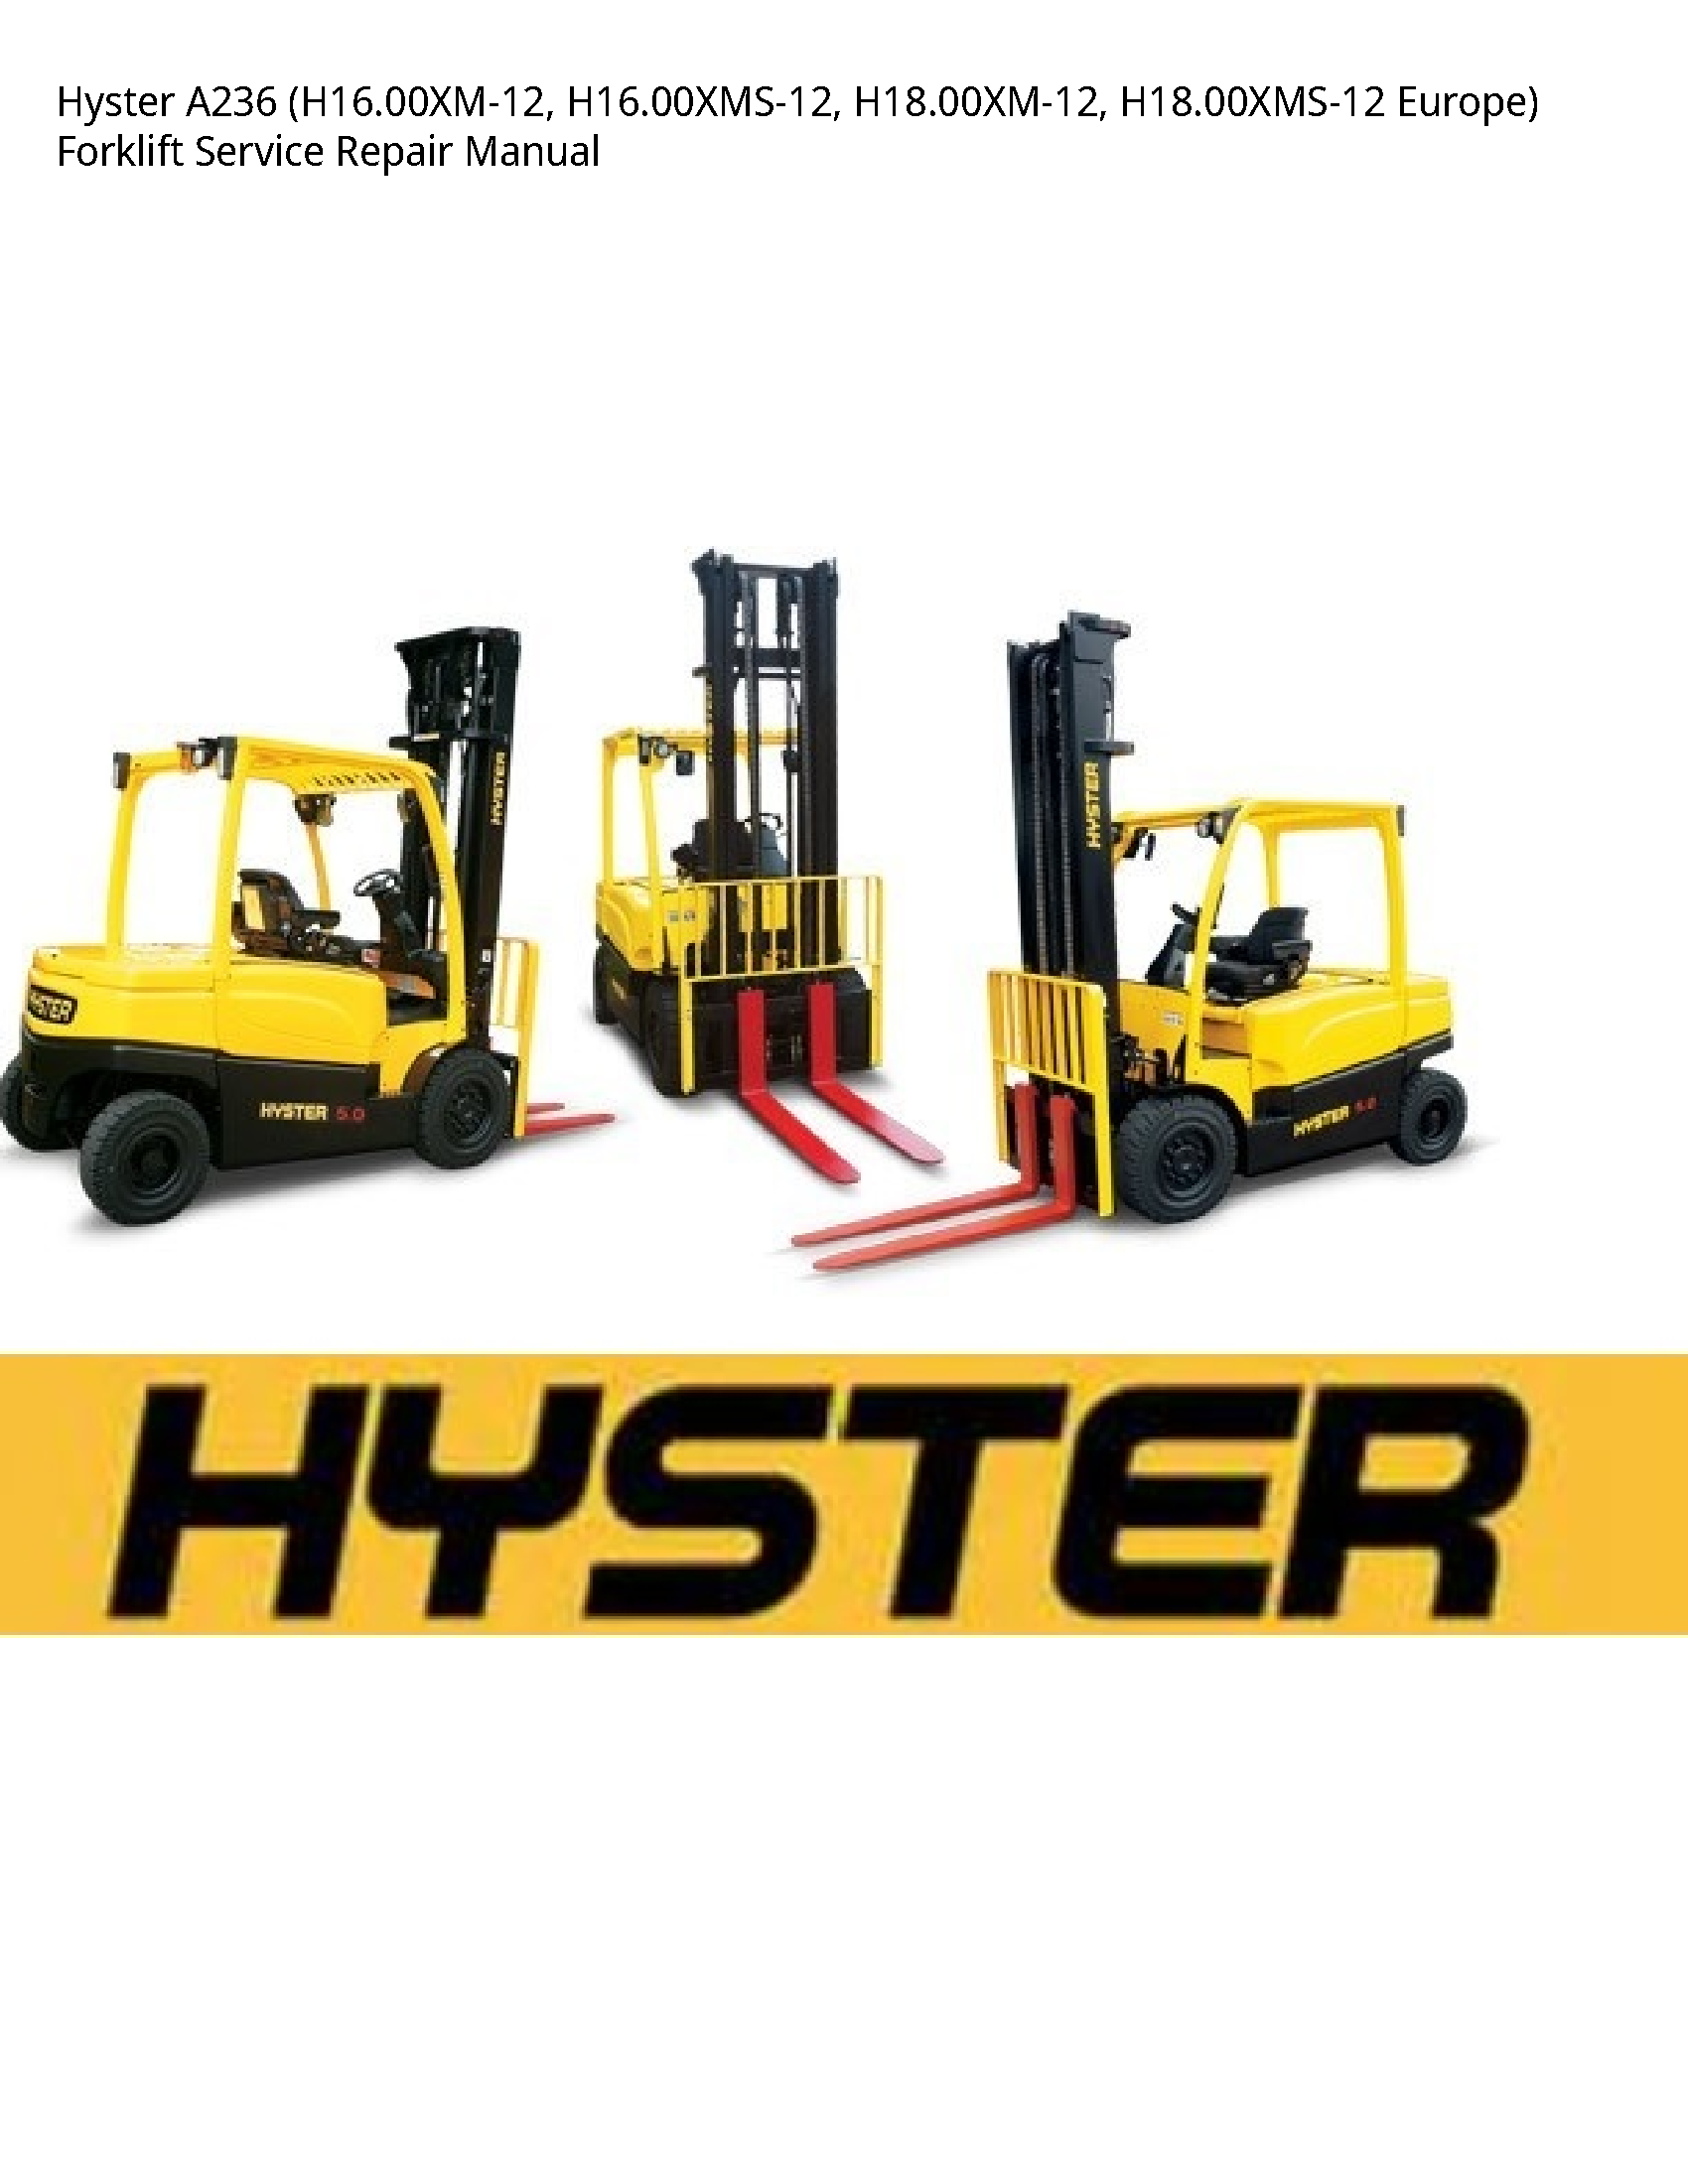 Hyster A236 Europe) Forklift manual